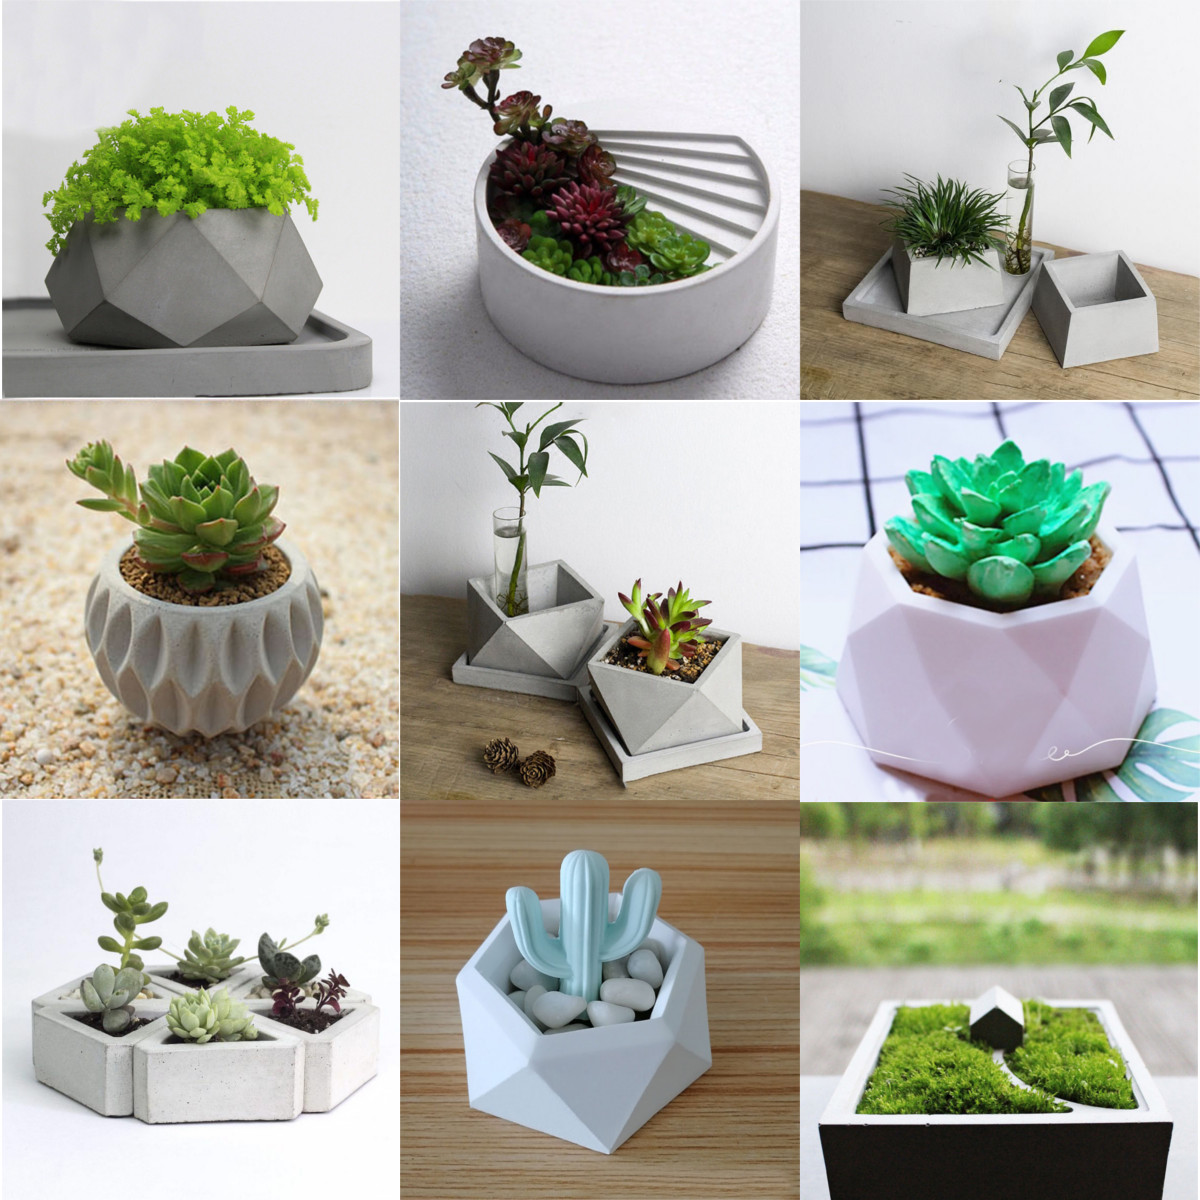 Details About Flower Pot Silicone Molds DIY Garden Planter Cement Concrete  Vase Soap Moulds